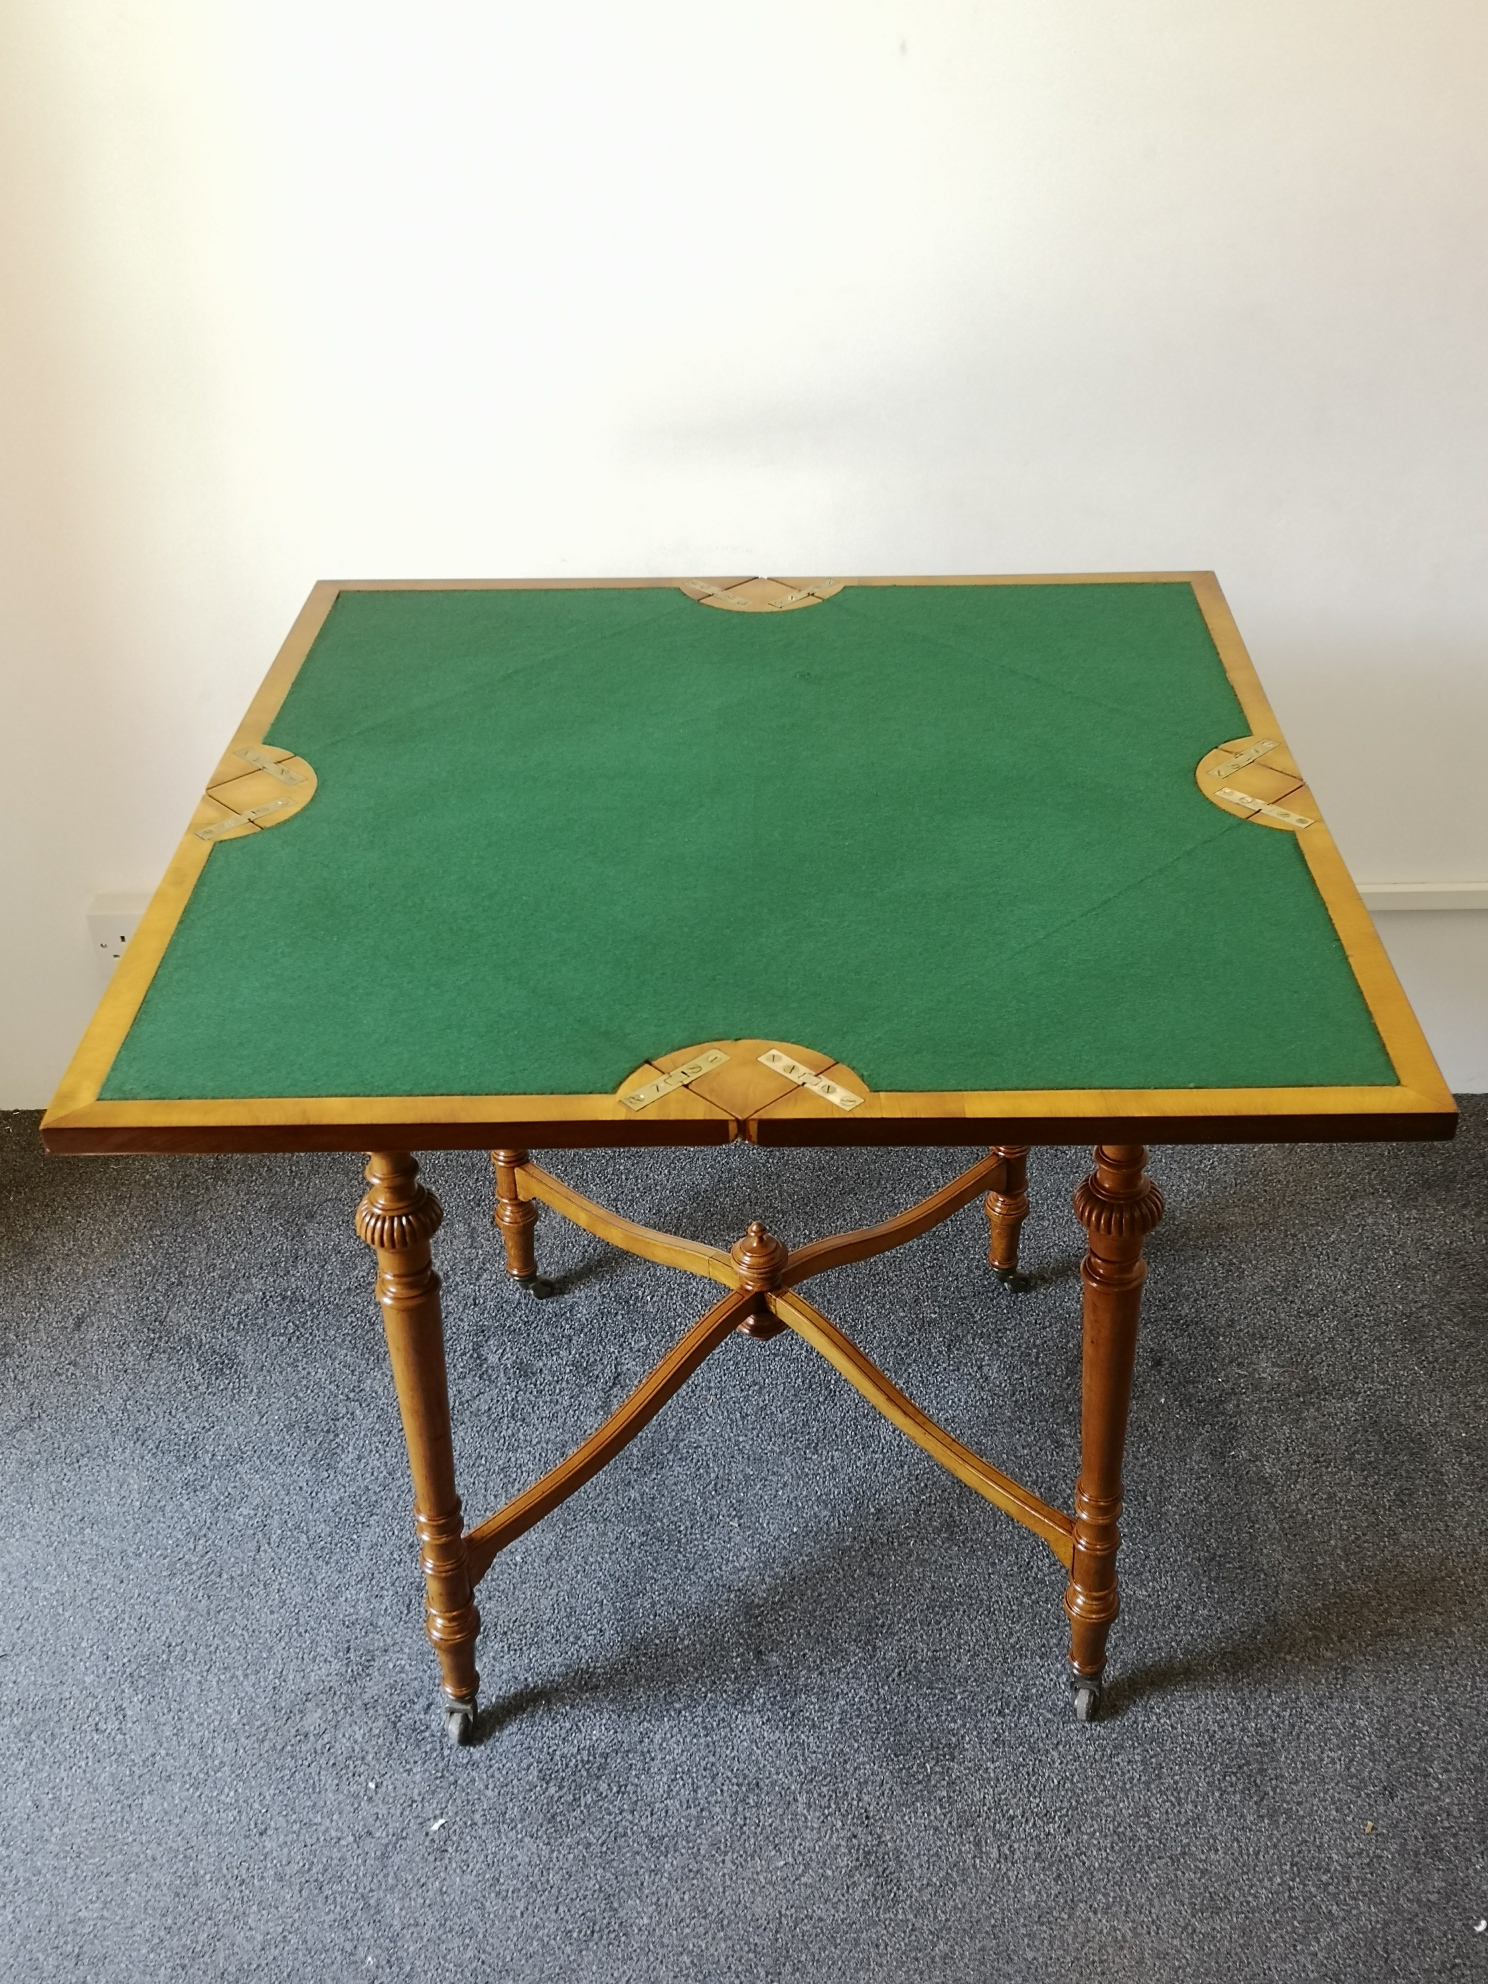 Late 19th Century Victorian Satinwood Envelope Card Table By JAS SHOOLBRED